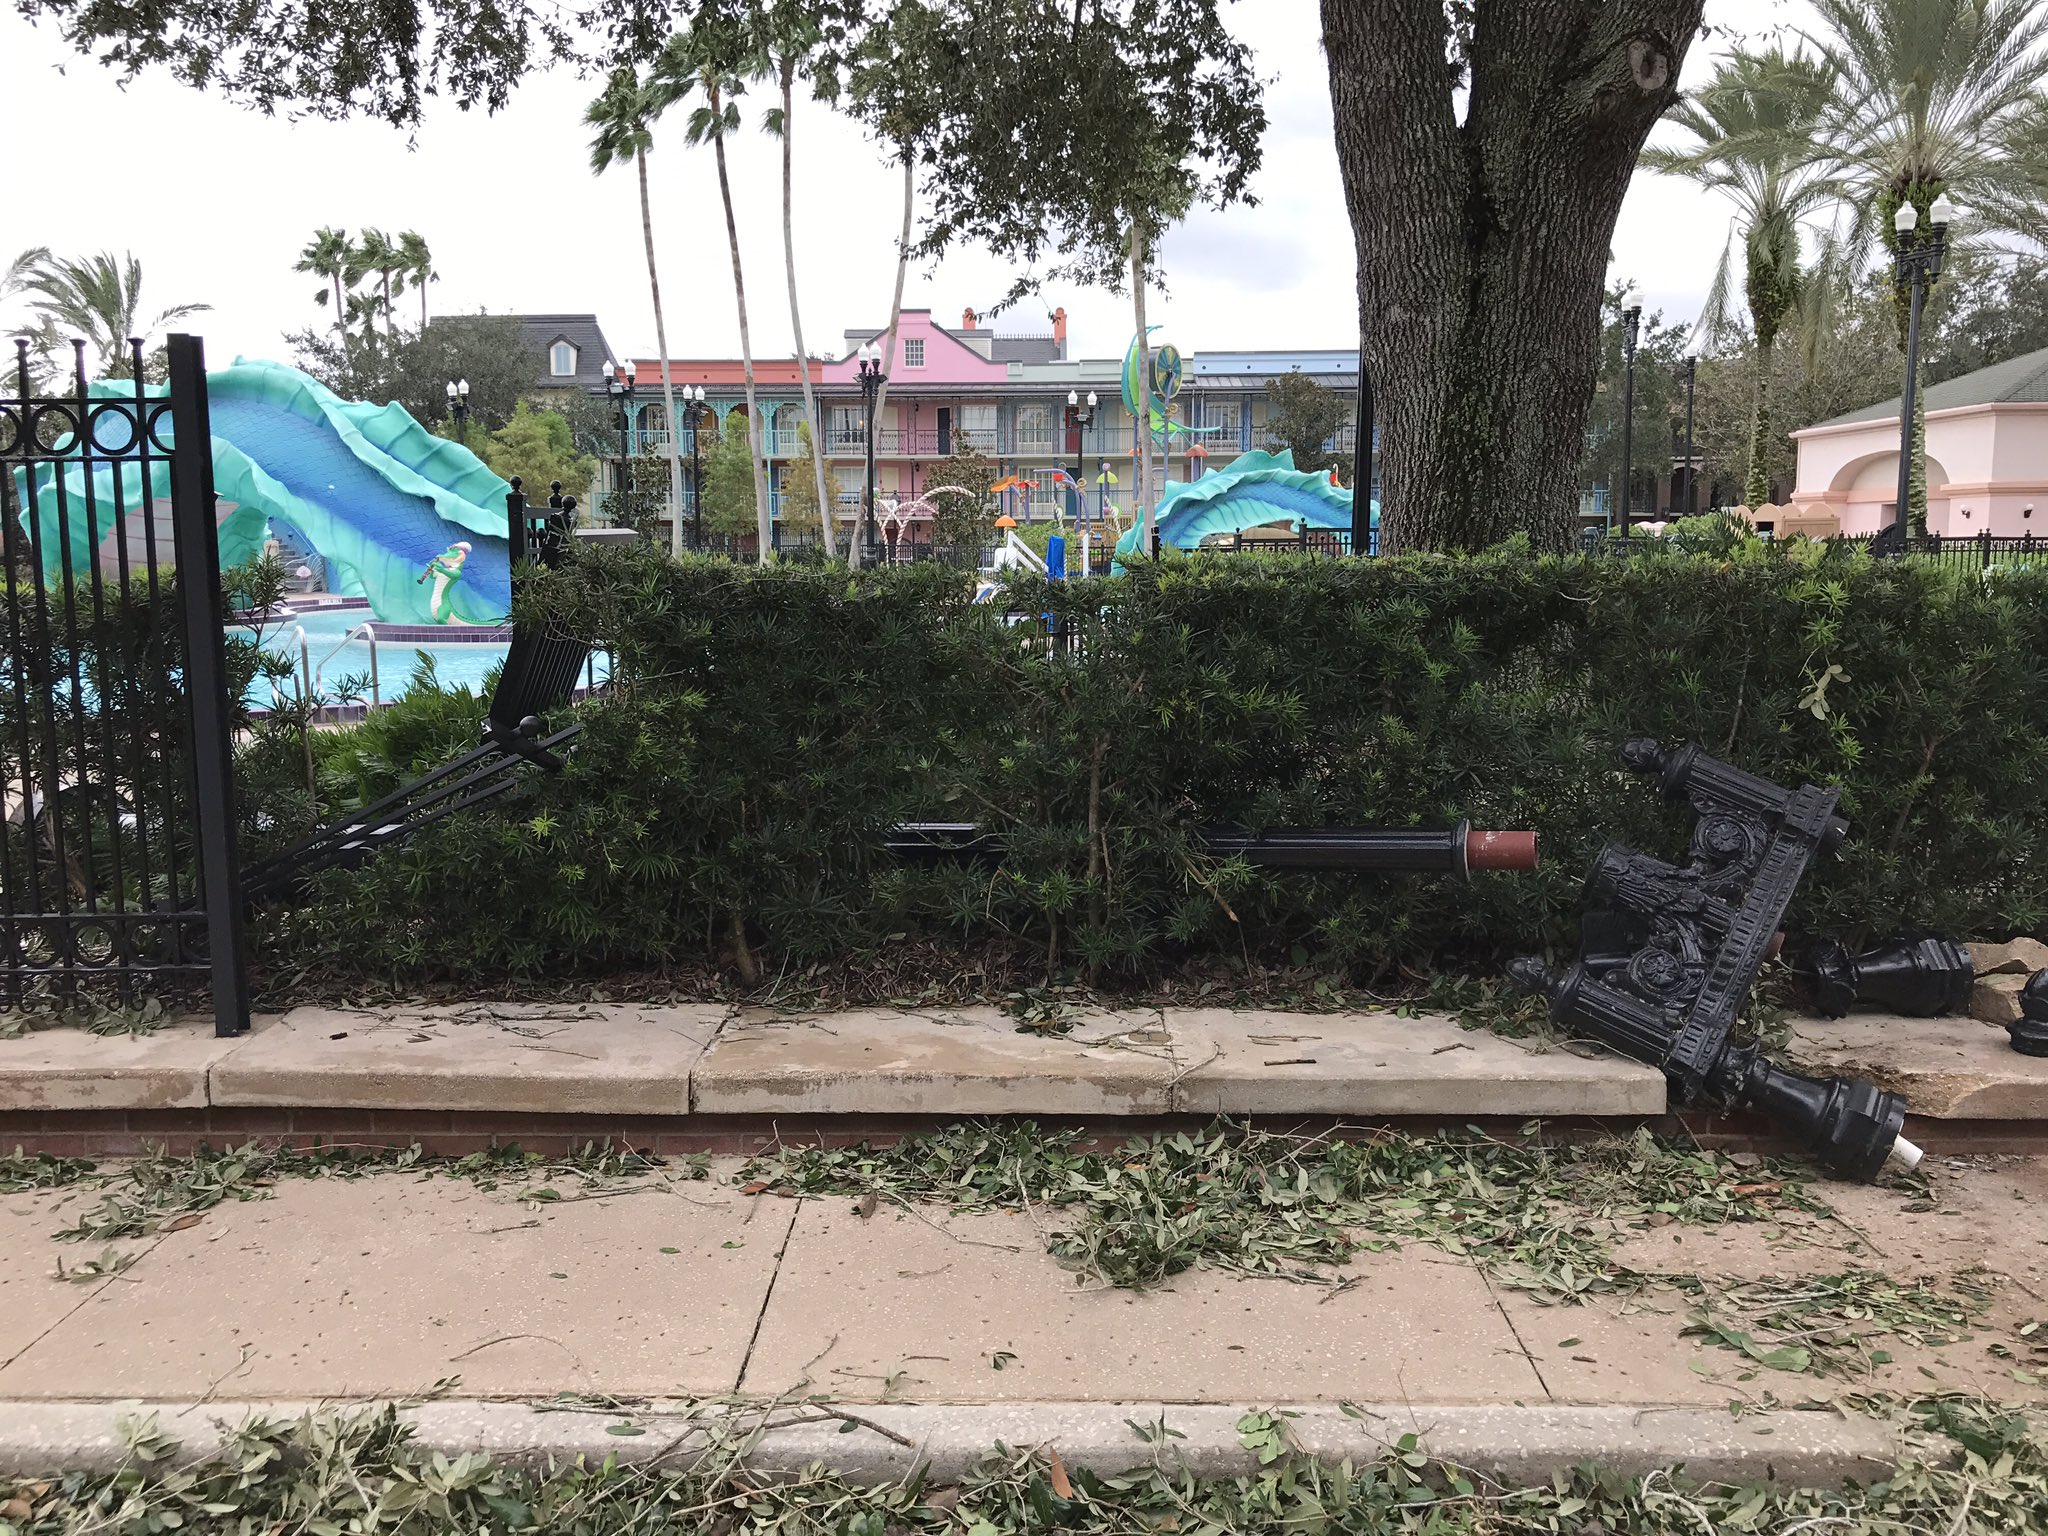 Hurricane Irma damage at Disney's Port Orleans Resort. Photo by @CafeFantasia